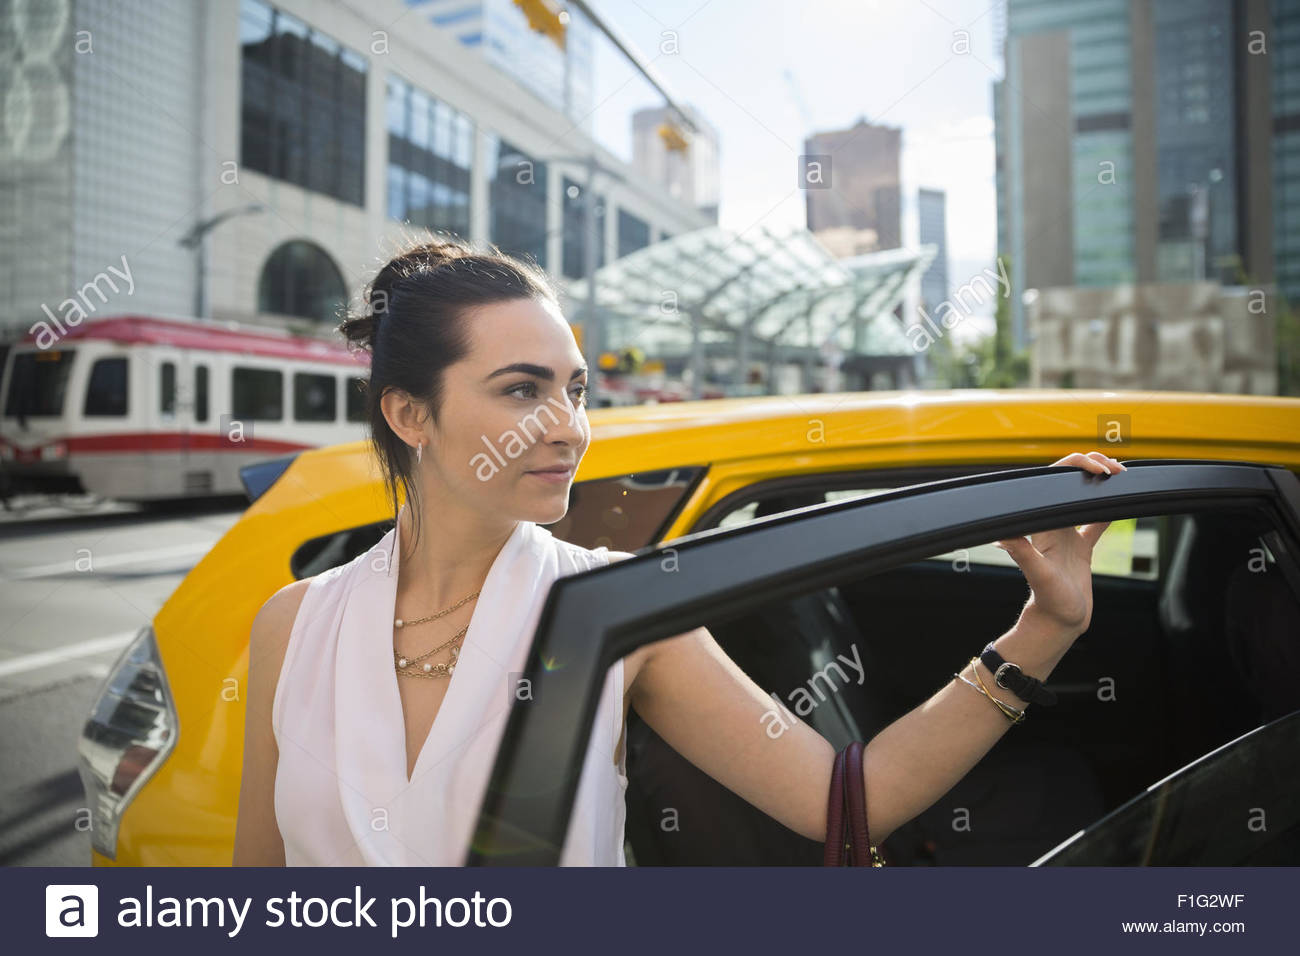 Businesswoman getting out of taxi in city - Stock Image